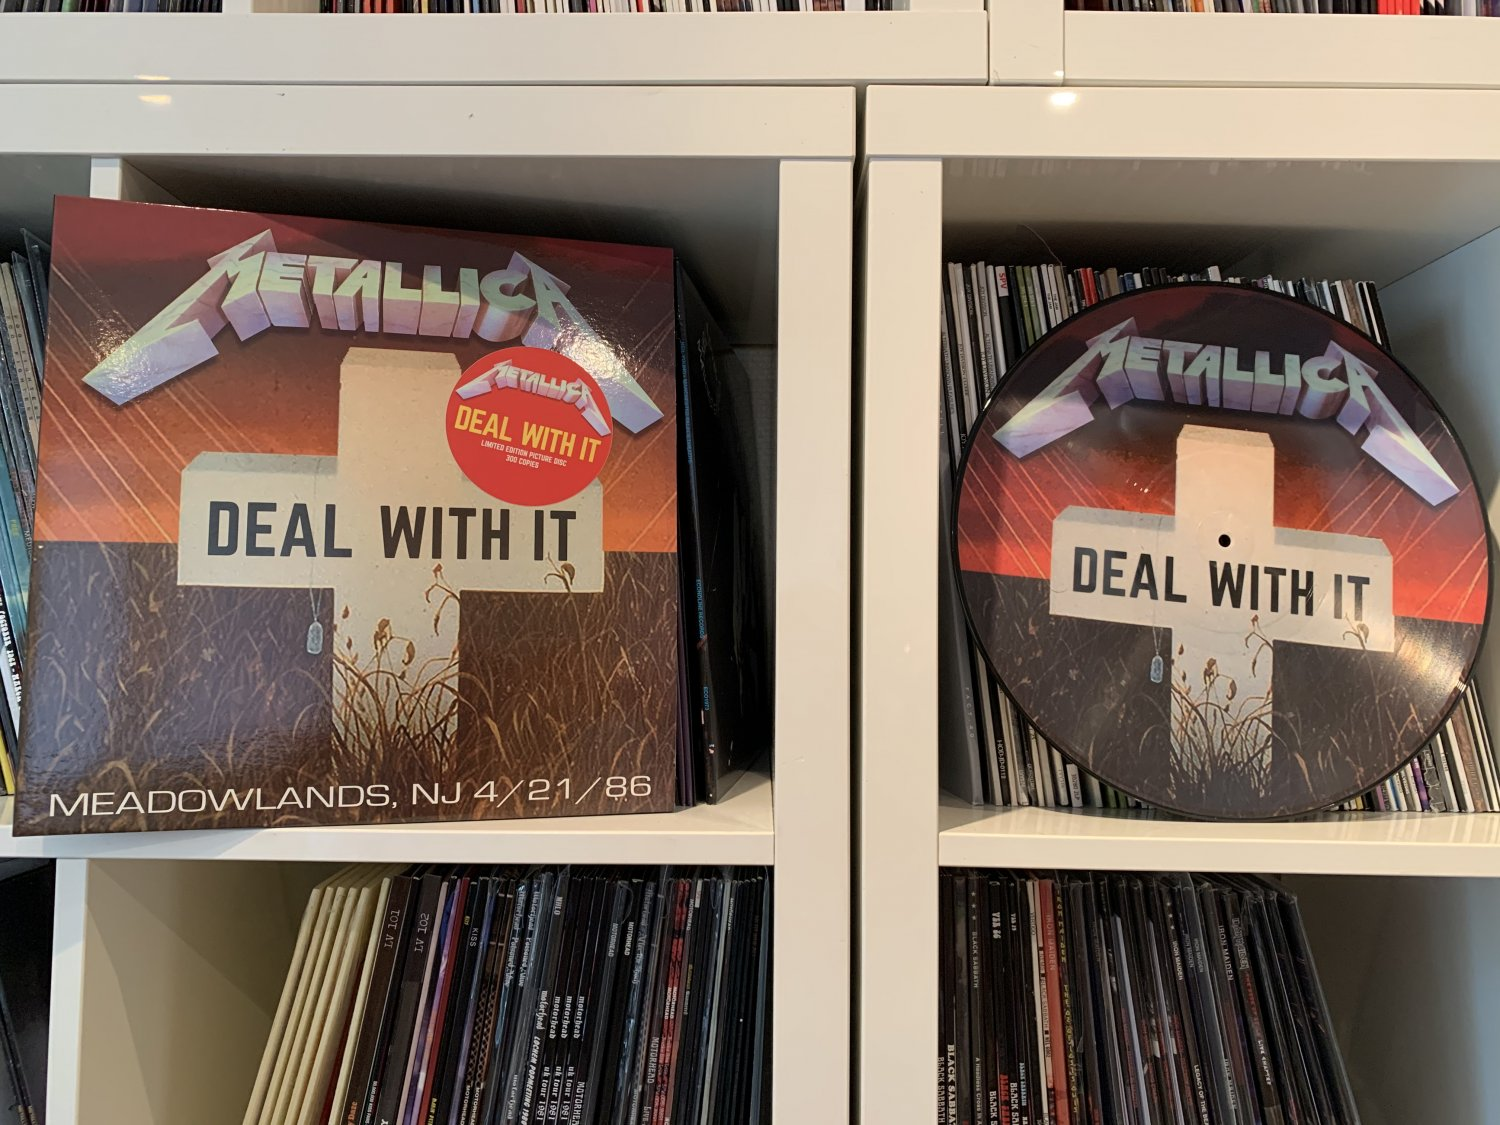 METALLICA deal with it